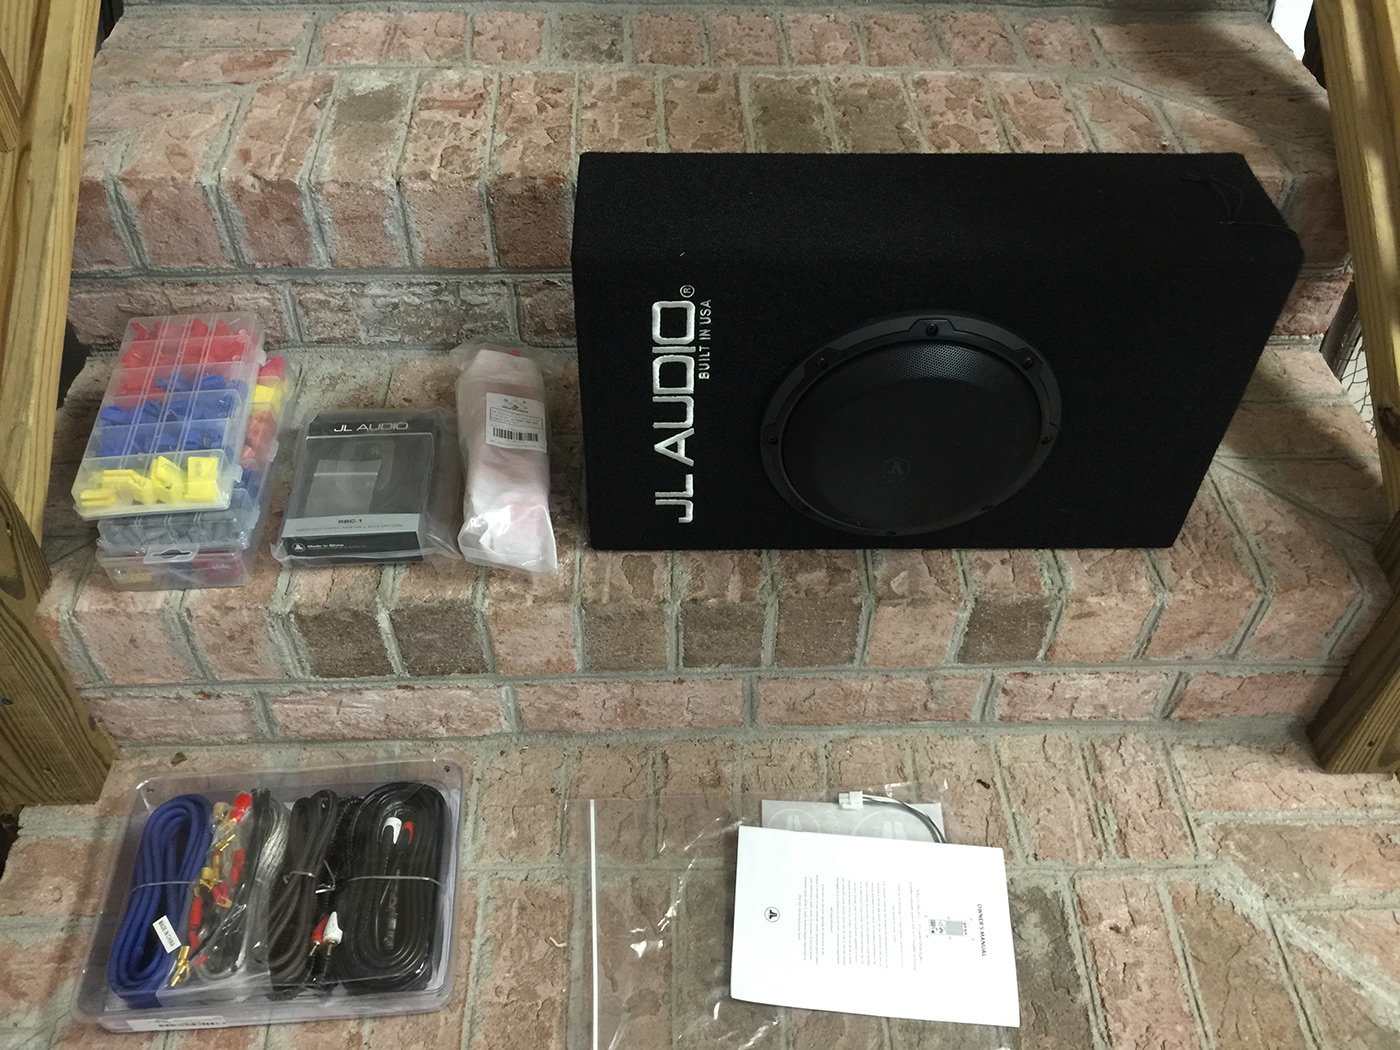 JL Audio ACP108LG-W3v3 and install materials